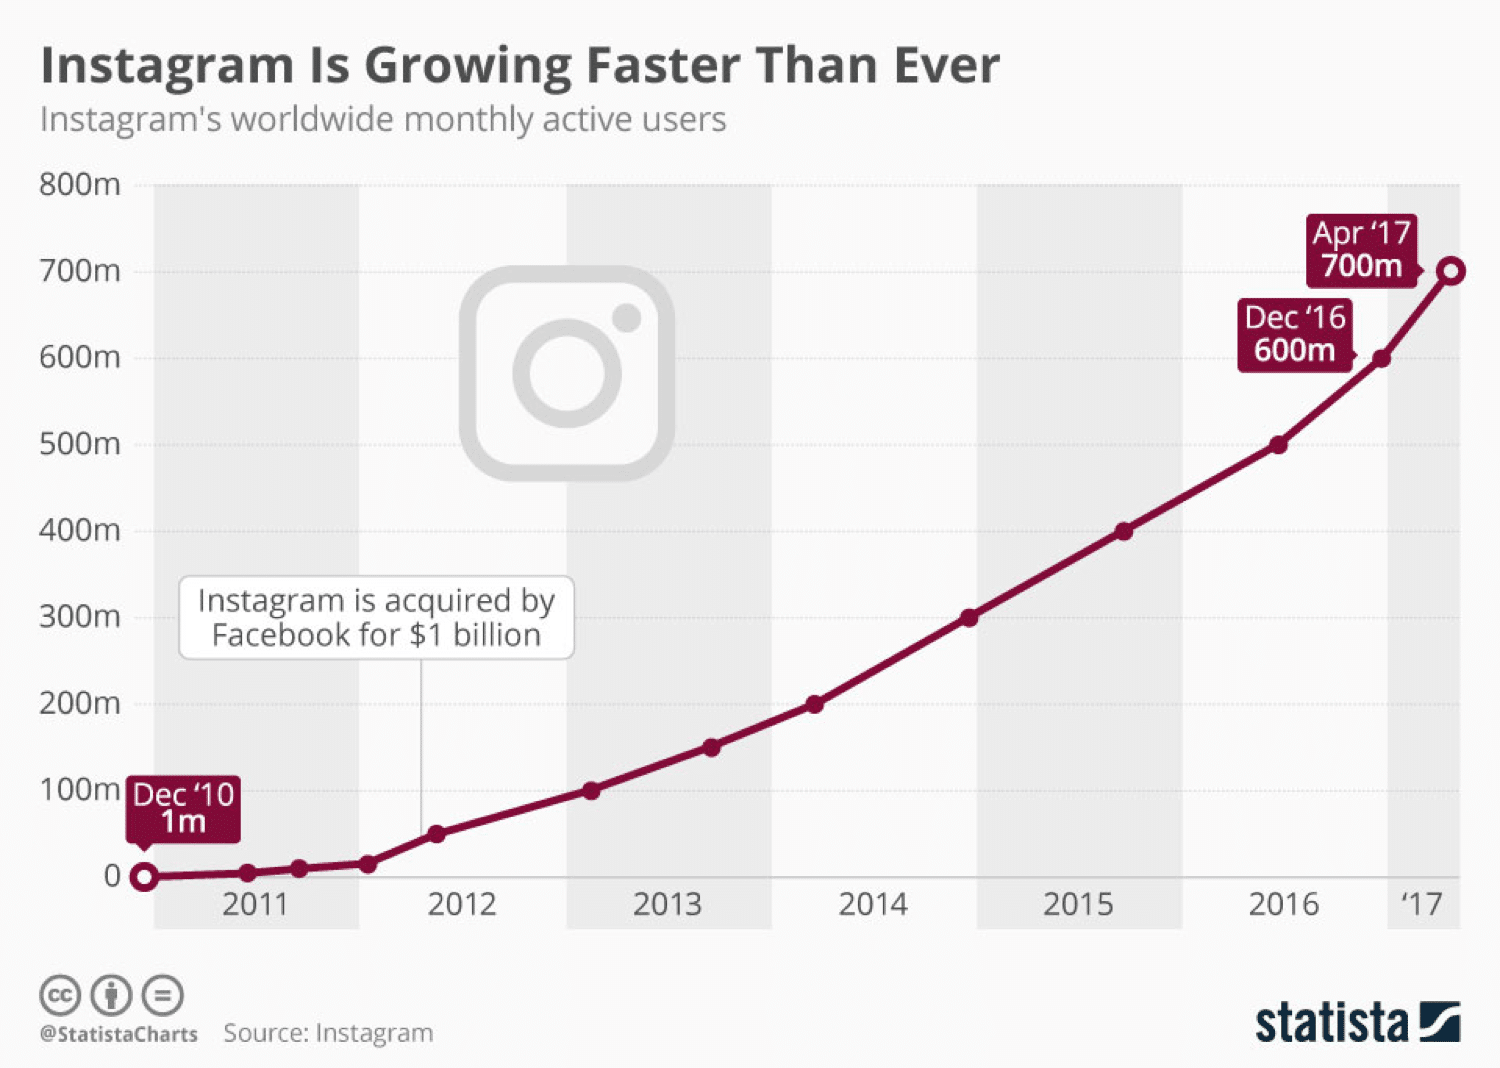 Instagram growth according to Statista